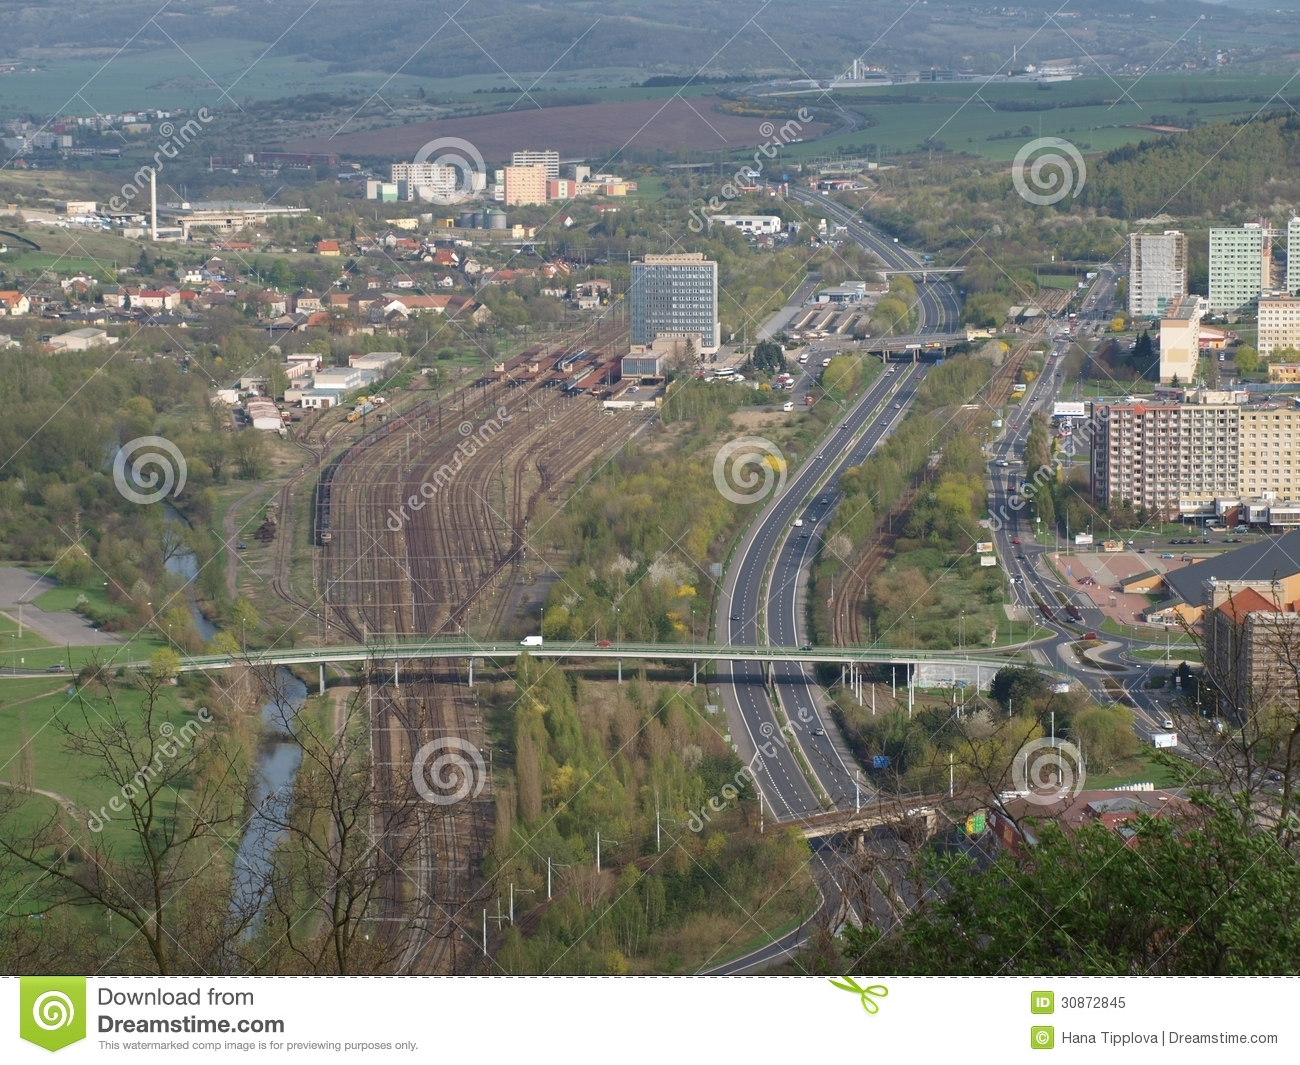 Transport infrastructure of the city